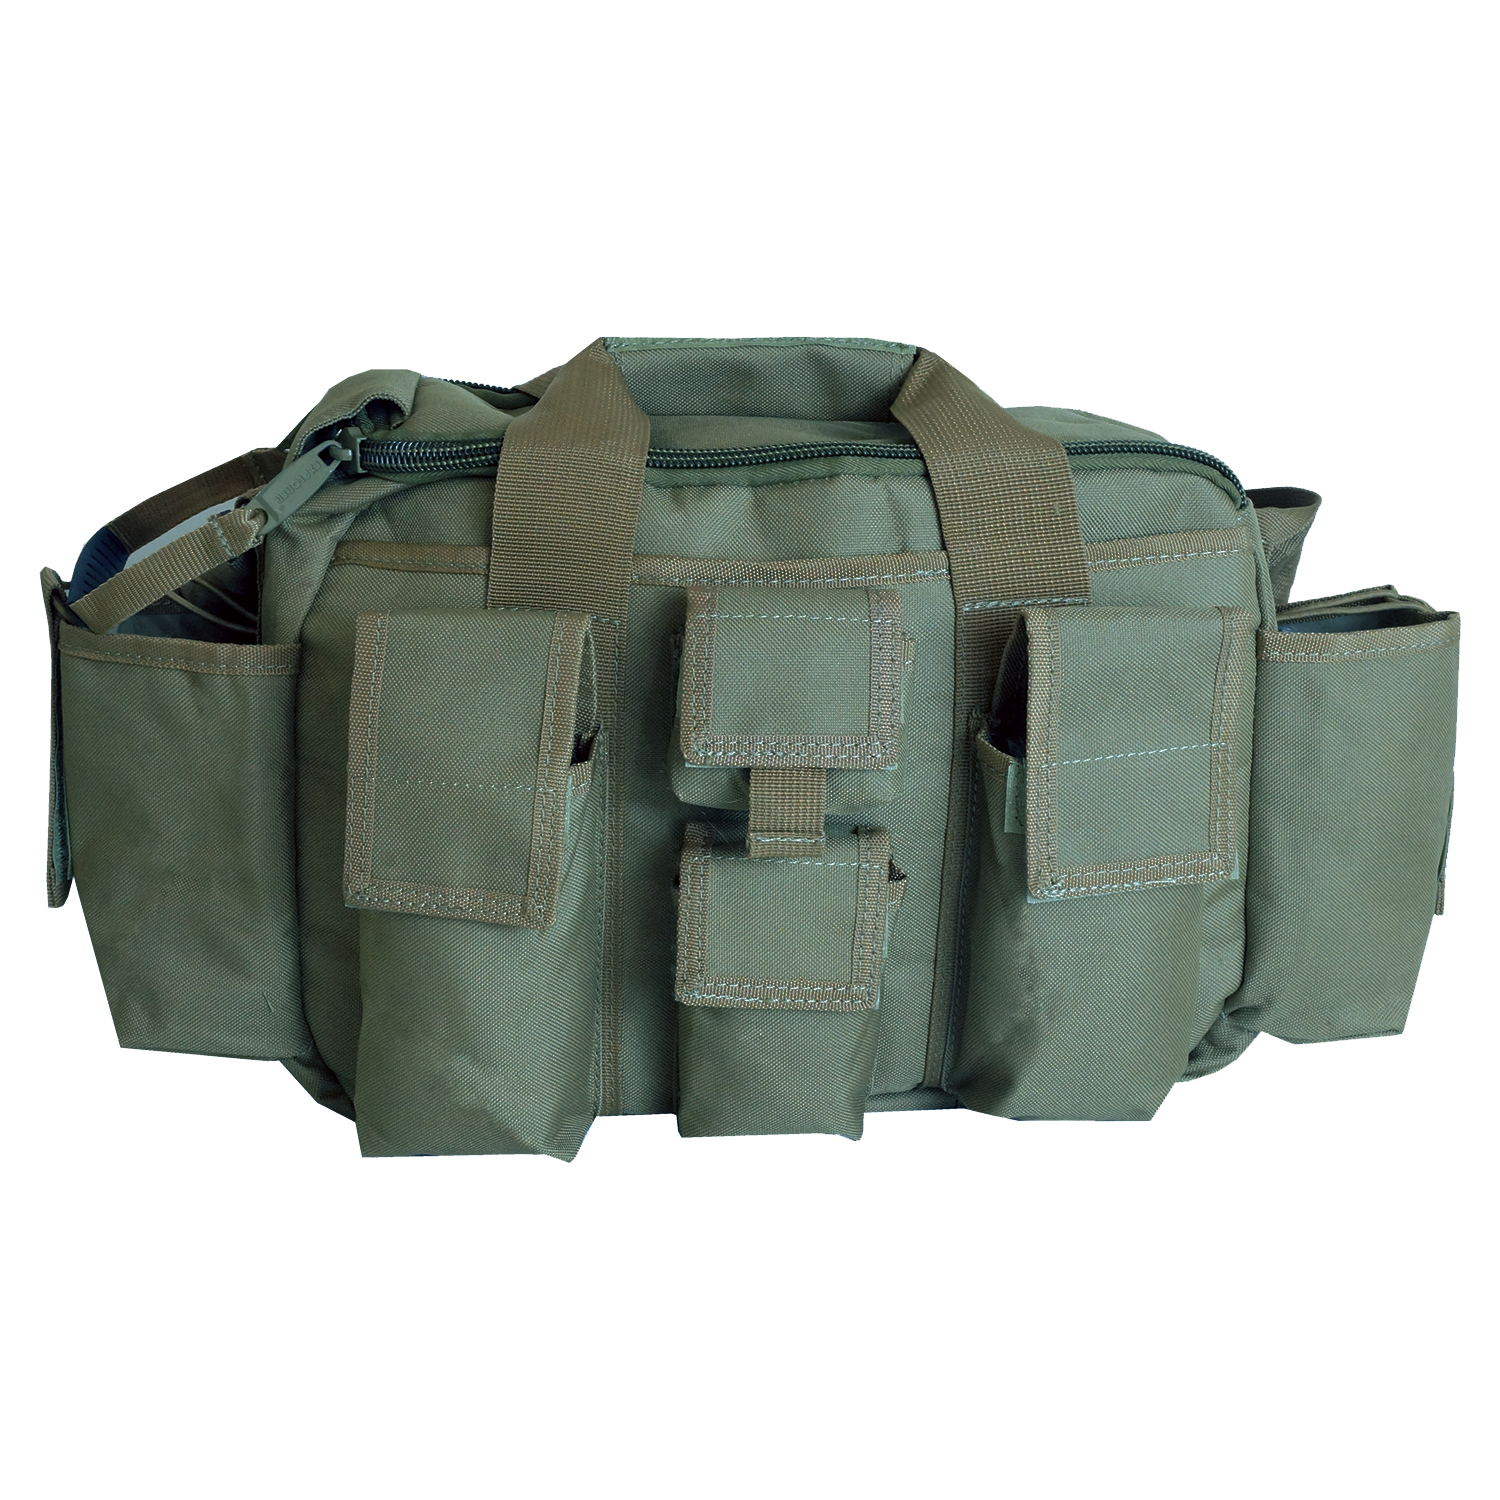 "Every Day Carry Tactical 18"" Bailout Shooting Range Bag Pack Backpack & Straps"